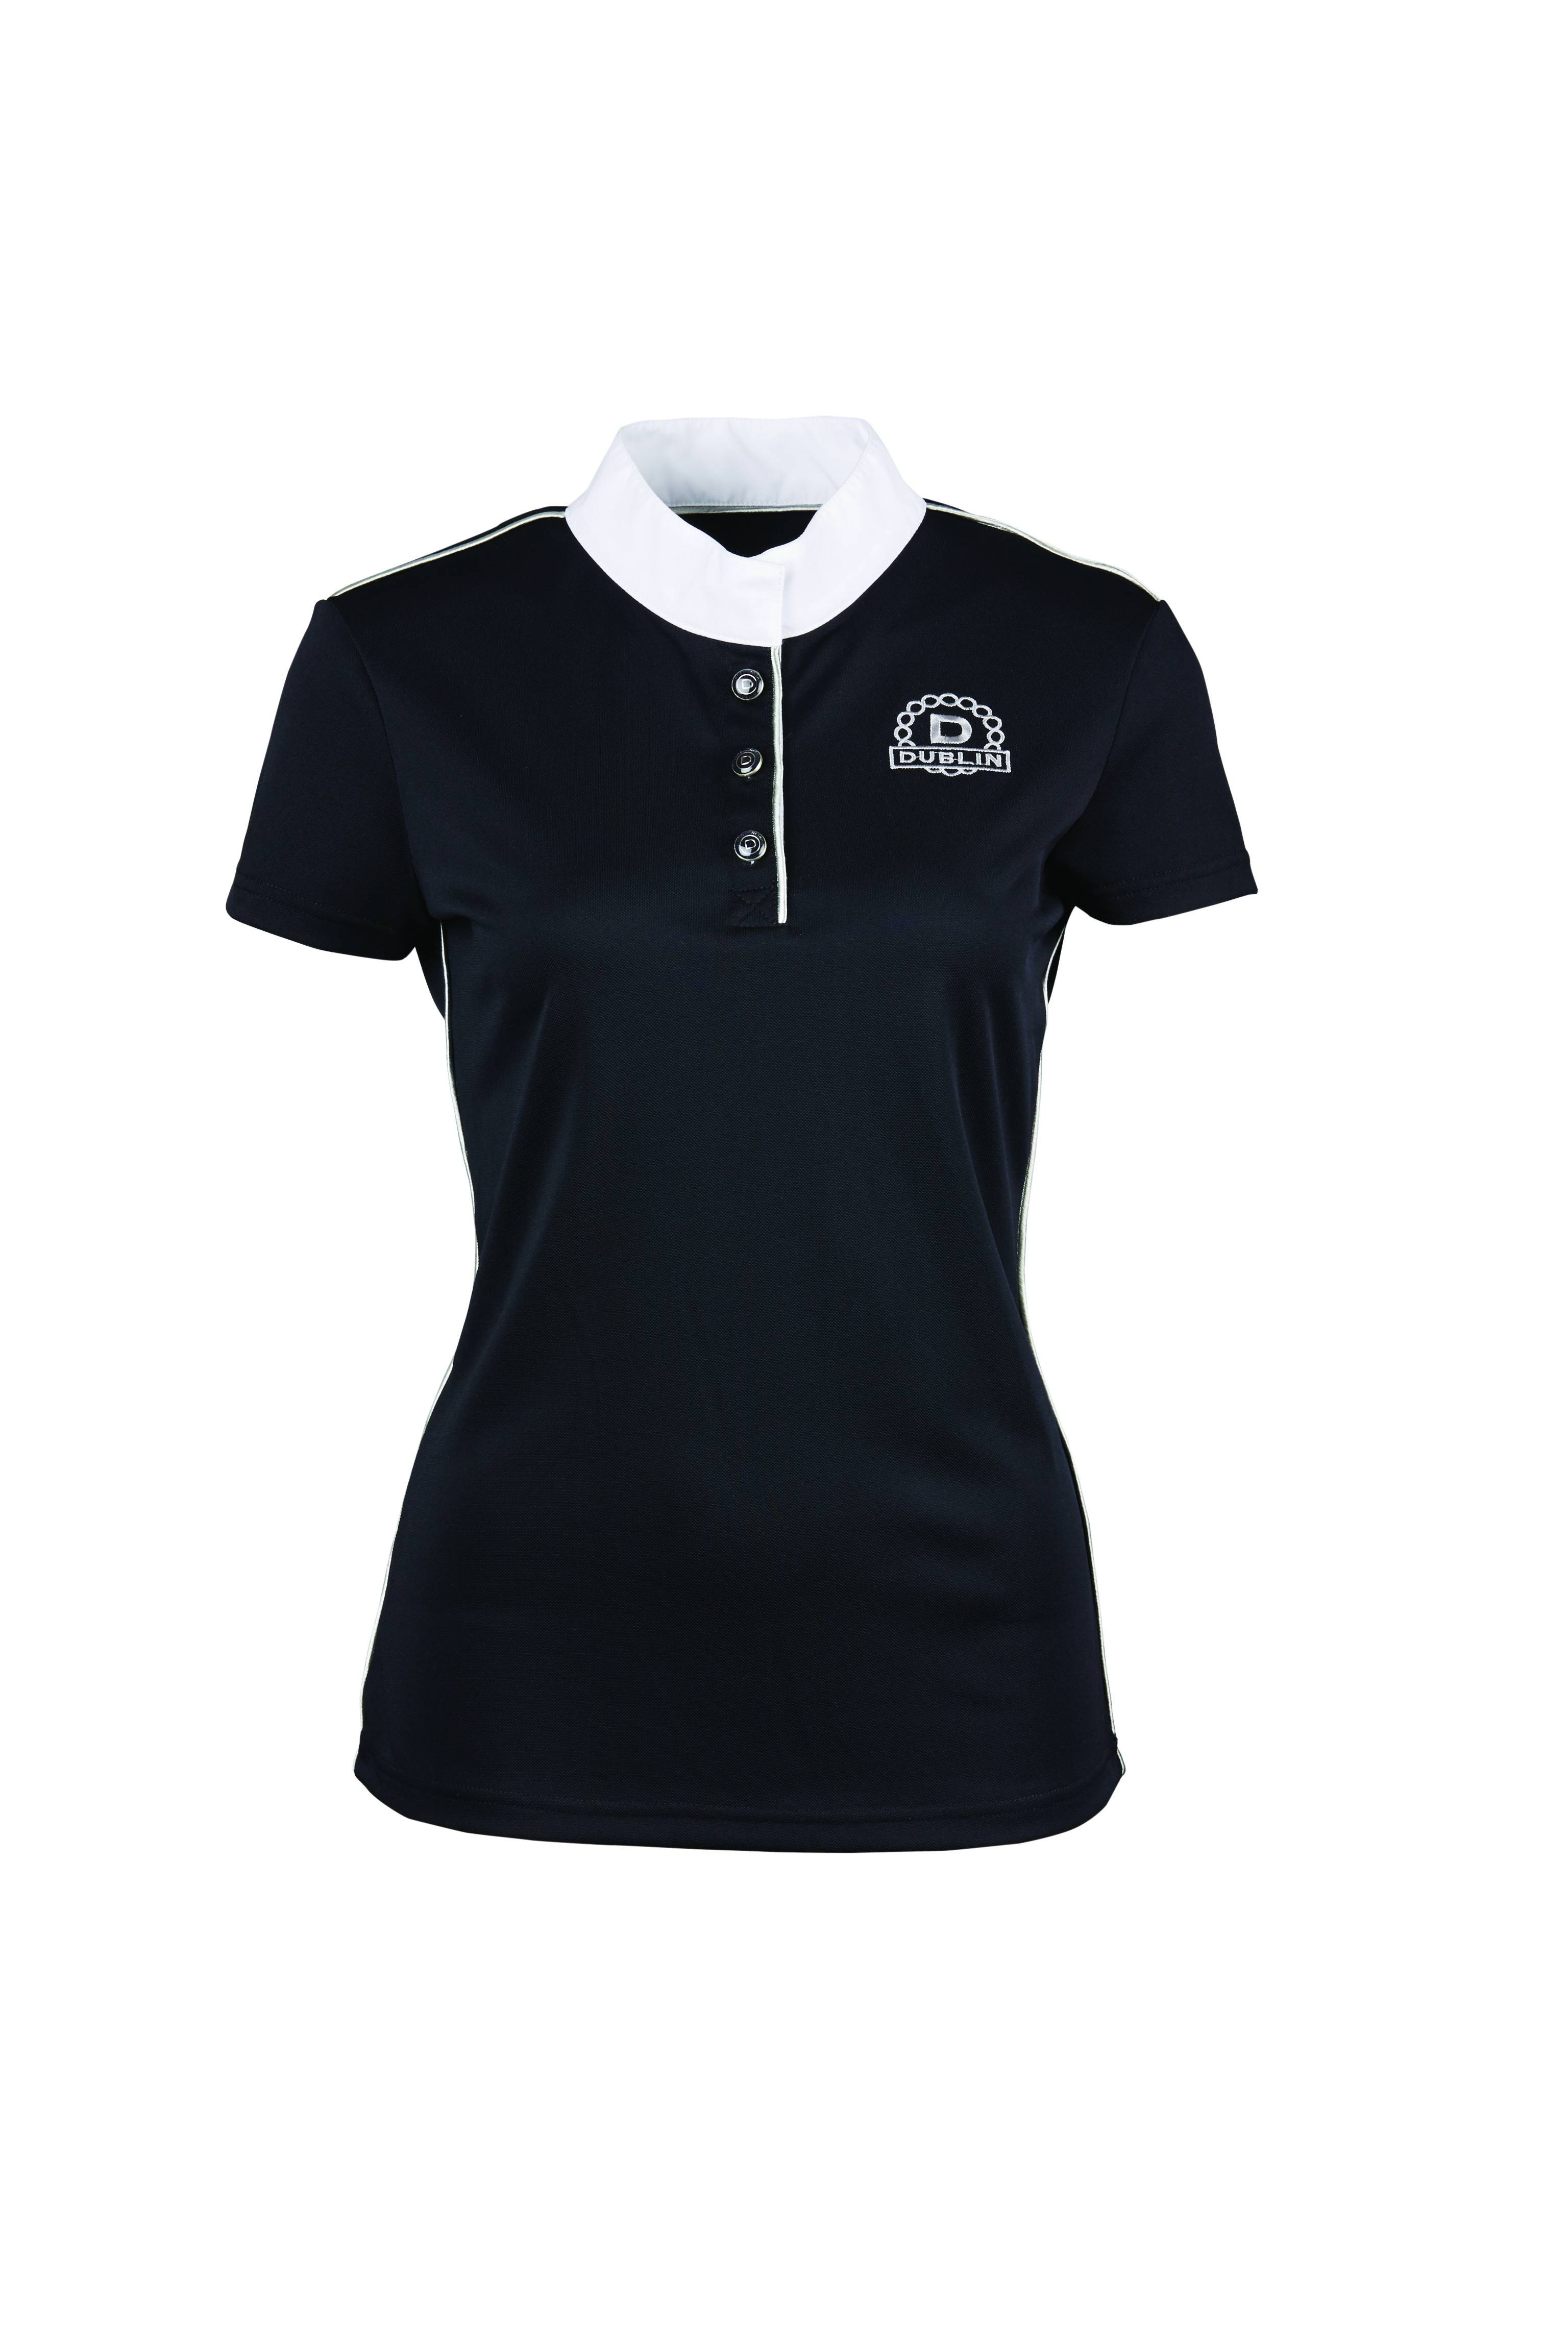 Dublin Ladies Taylor Technical Top